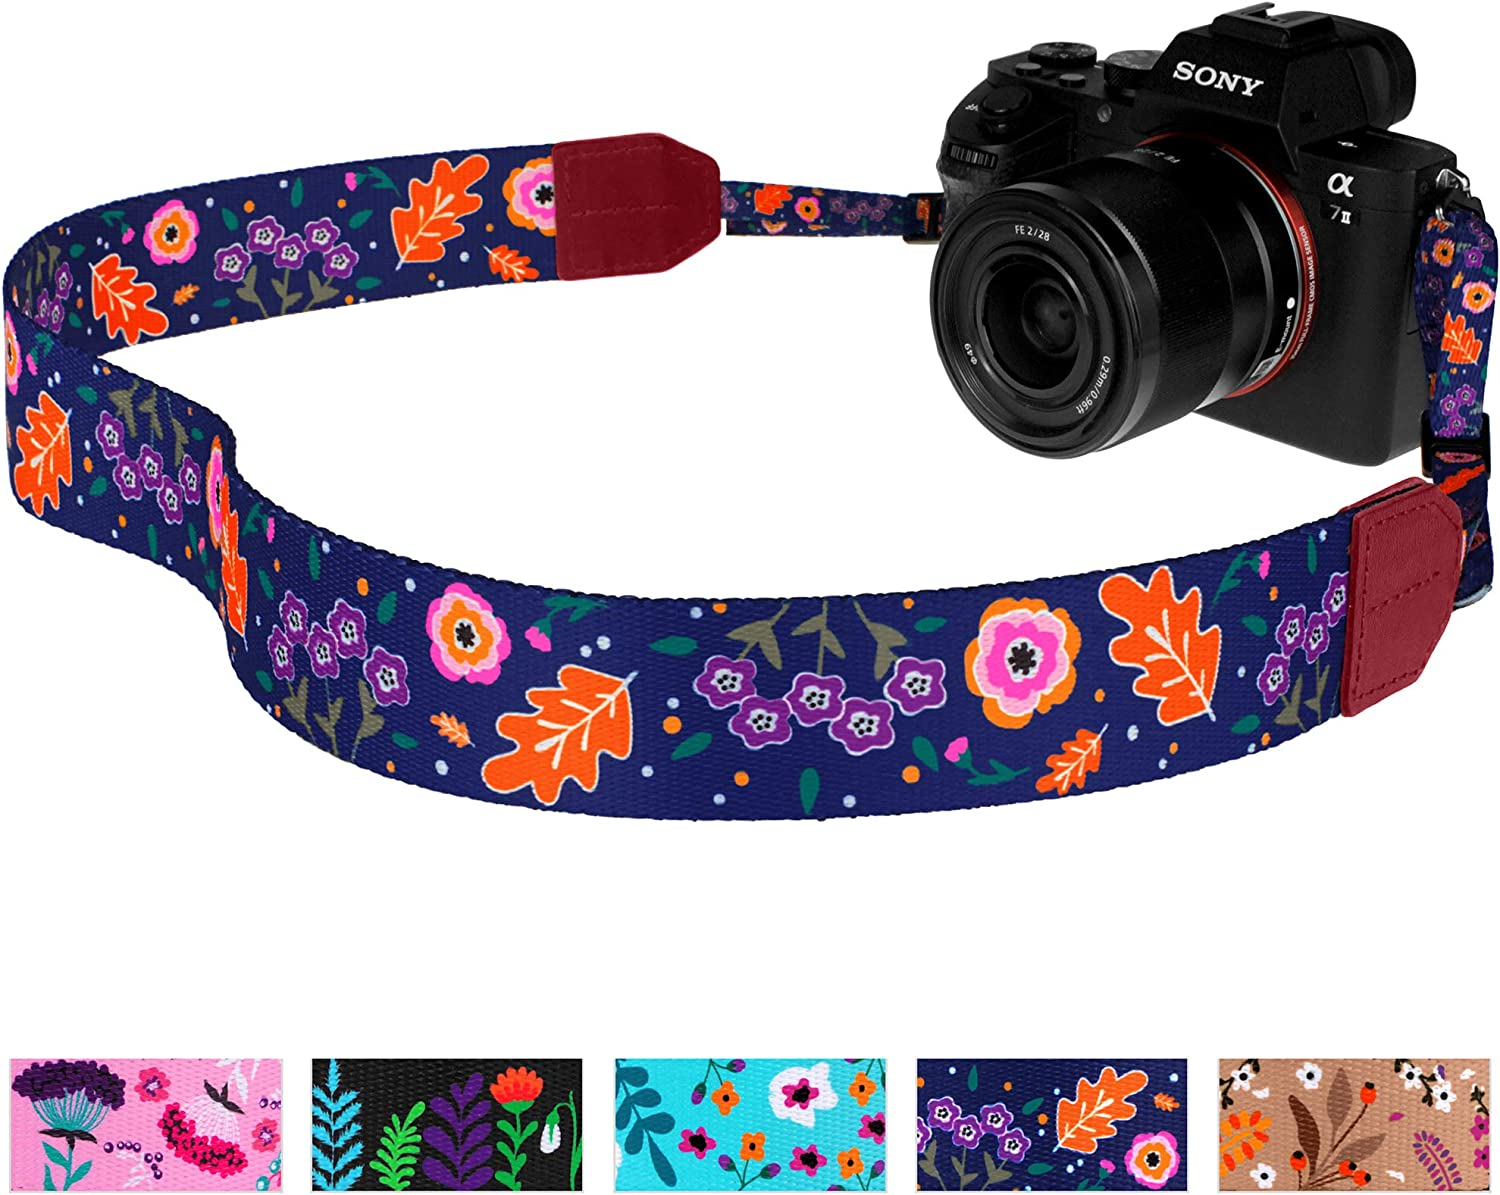 Pawia Floral Camera Neck Shoulder Strap for Women Universal DSLR Camera Accessories Belt for Canon Nikon Sony Fuji Lumix Olympus Navy Blue